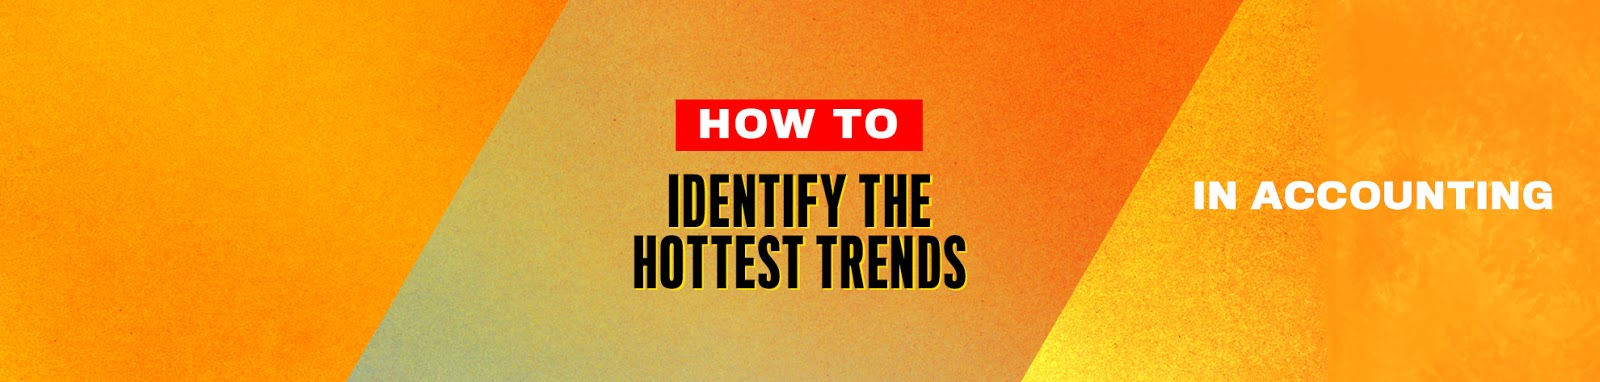 How to Use Google Trends for Identifying the Hottest Trends in Accounting